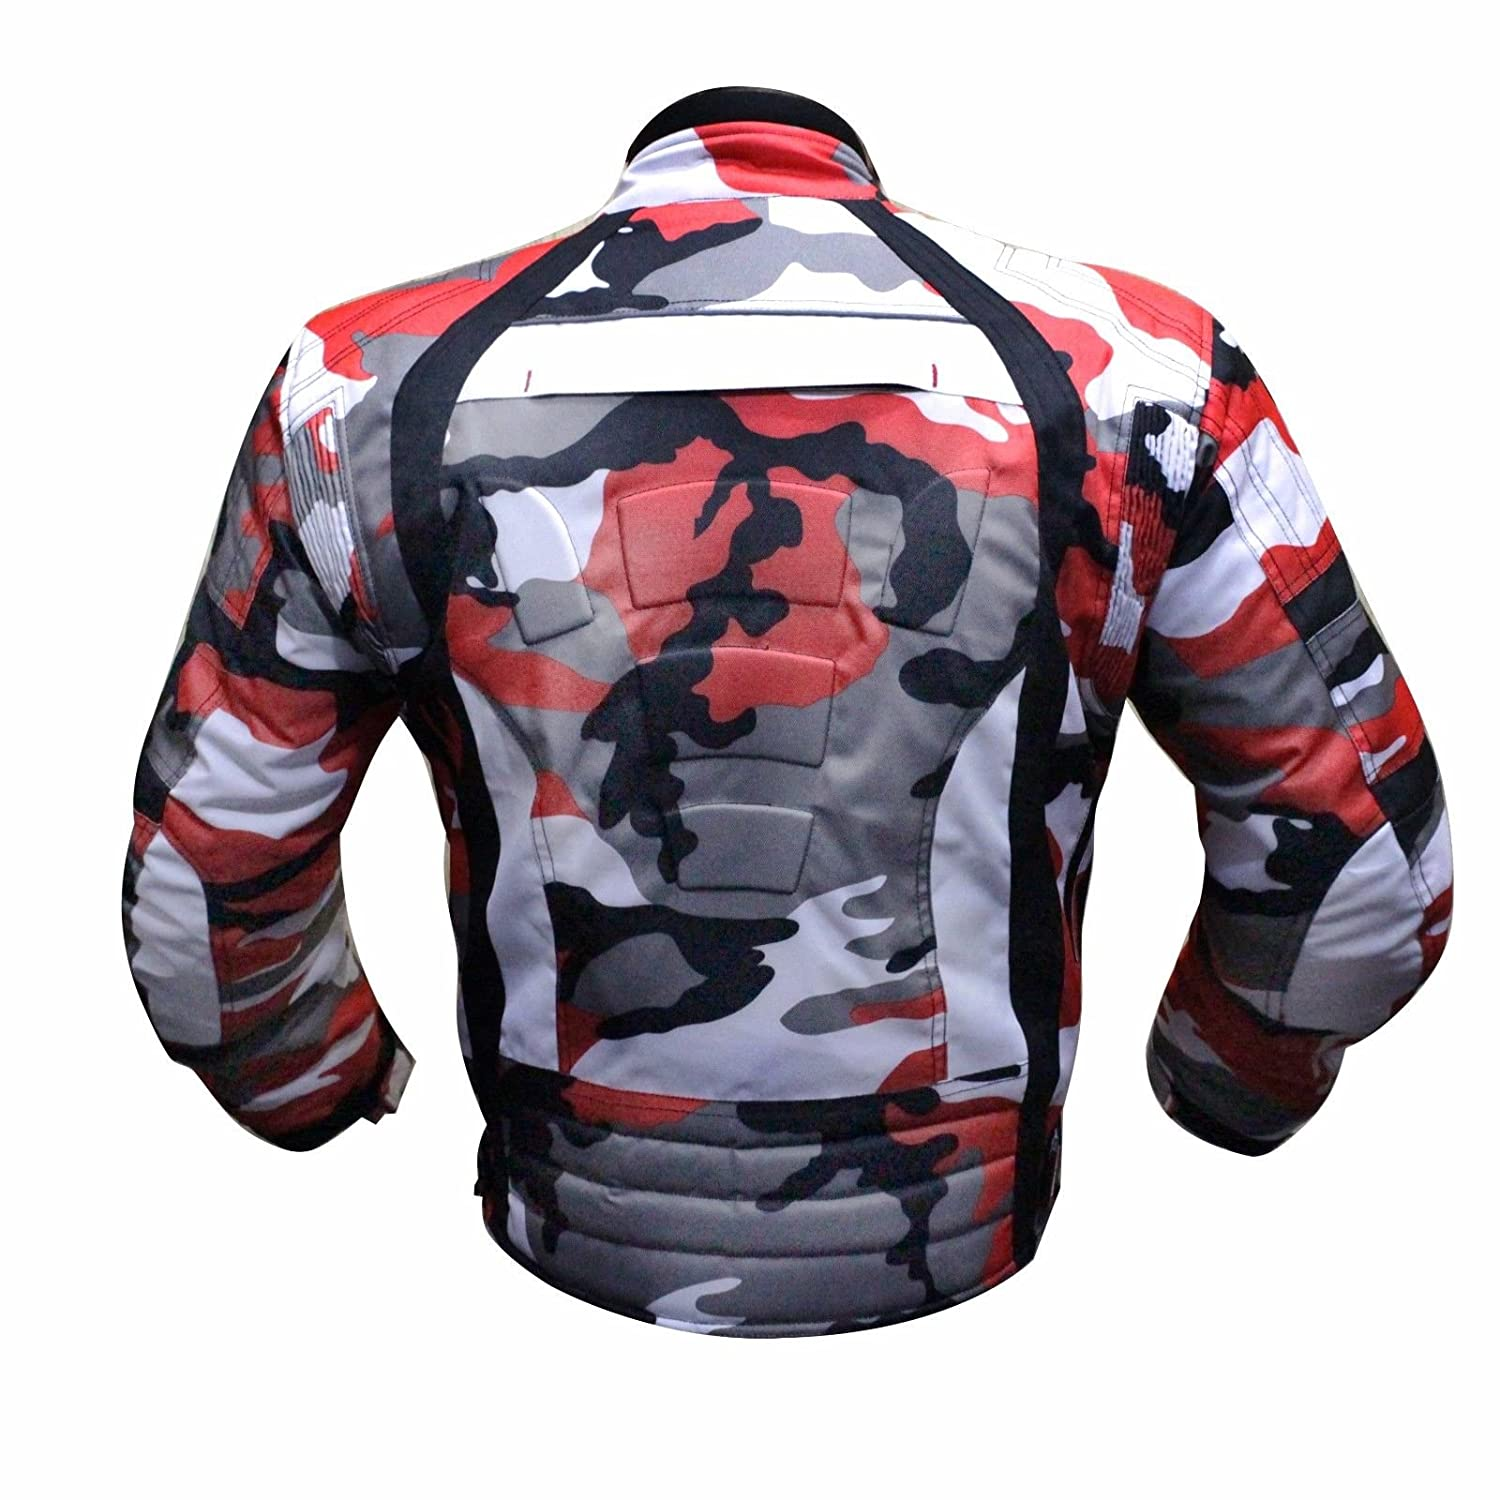 6 Packs Design Most Popular Black /& Full Black, Large JKT-007 Waterproof Motorbike Motorcycle Jacket in Cordura Fabric and CE Approved Armour